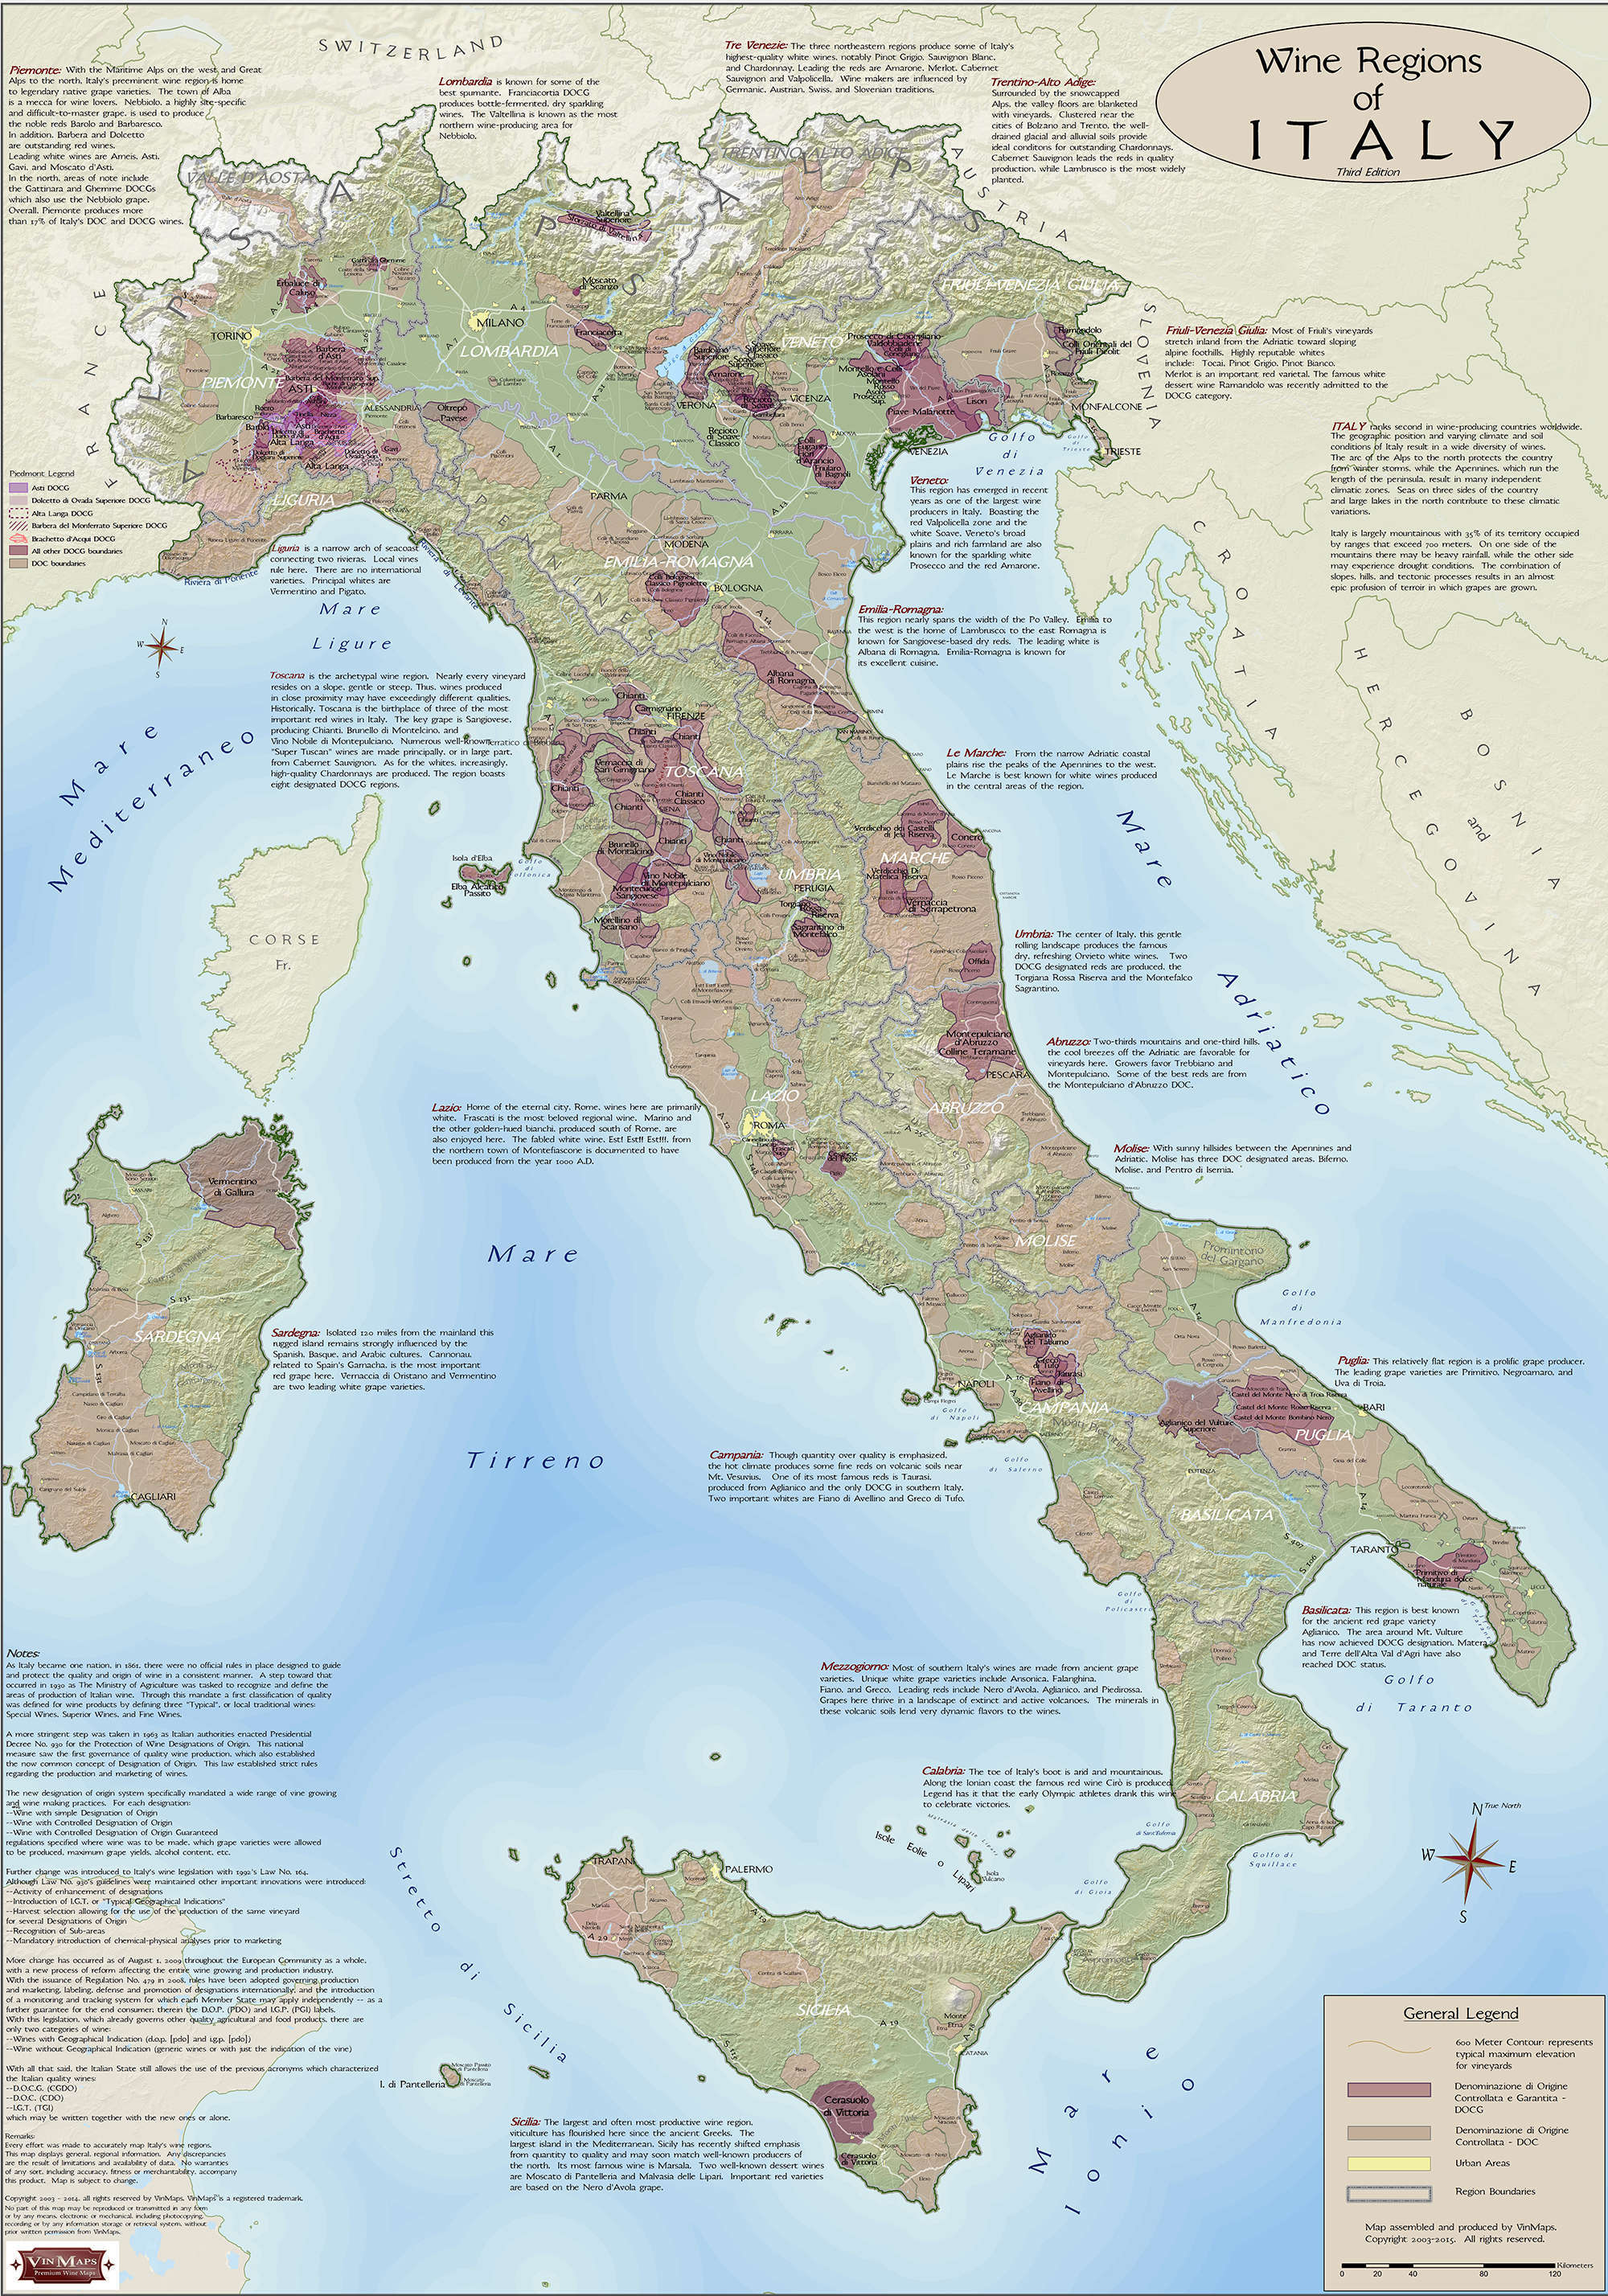 Wine Regions Italy Map.Italy Wine Regions Map Vinmaps